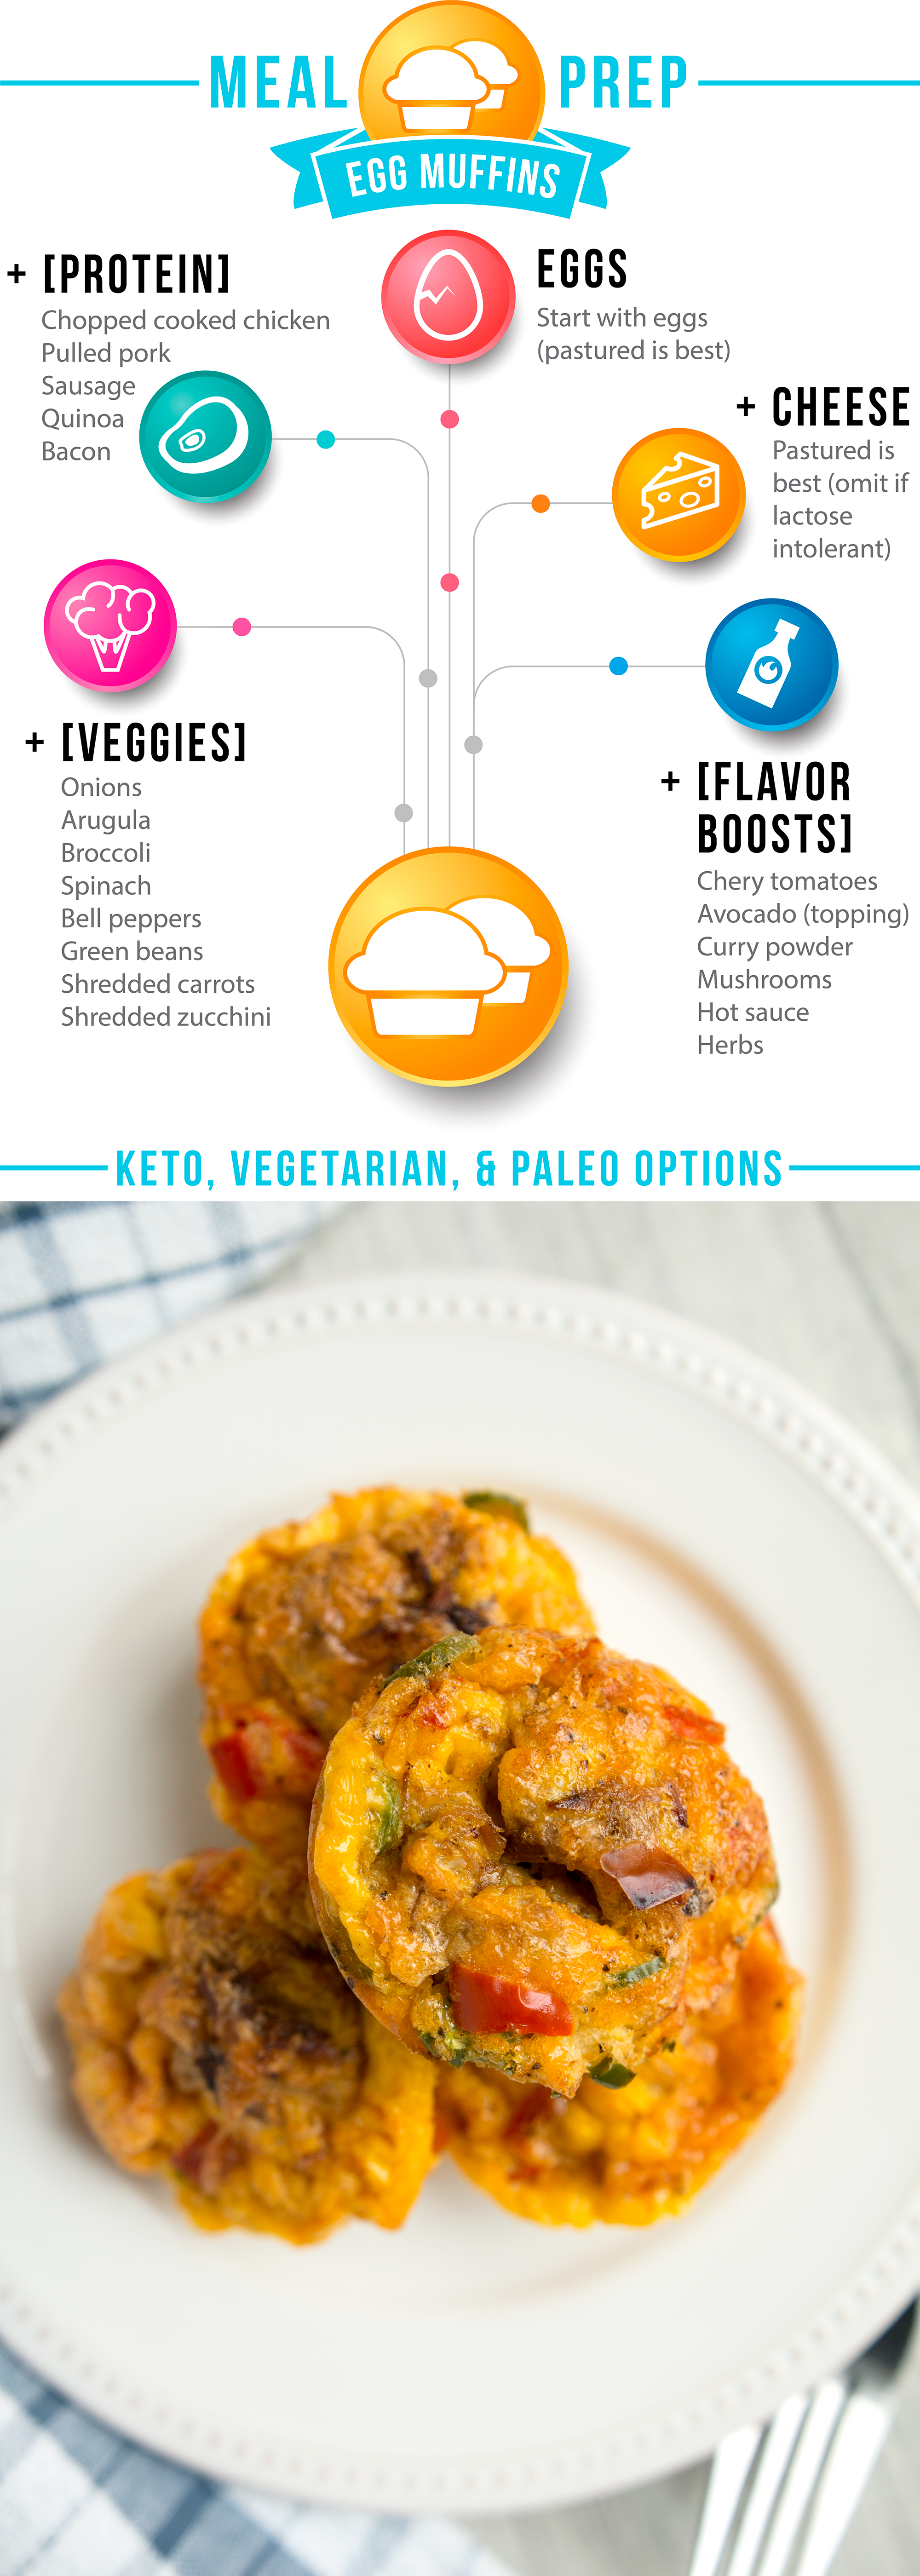 Check out my meal prep roadmap for the ultimate in adaptable: Egg Muffins! Made with delicious pastured eggs, plenty of veggies, the protein of your choice, and toppings to make your taste buds sizzle.